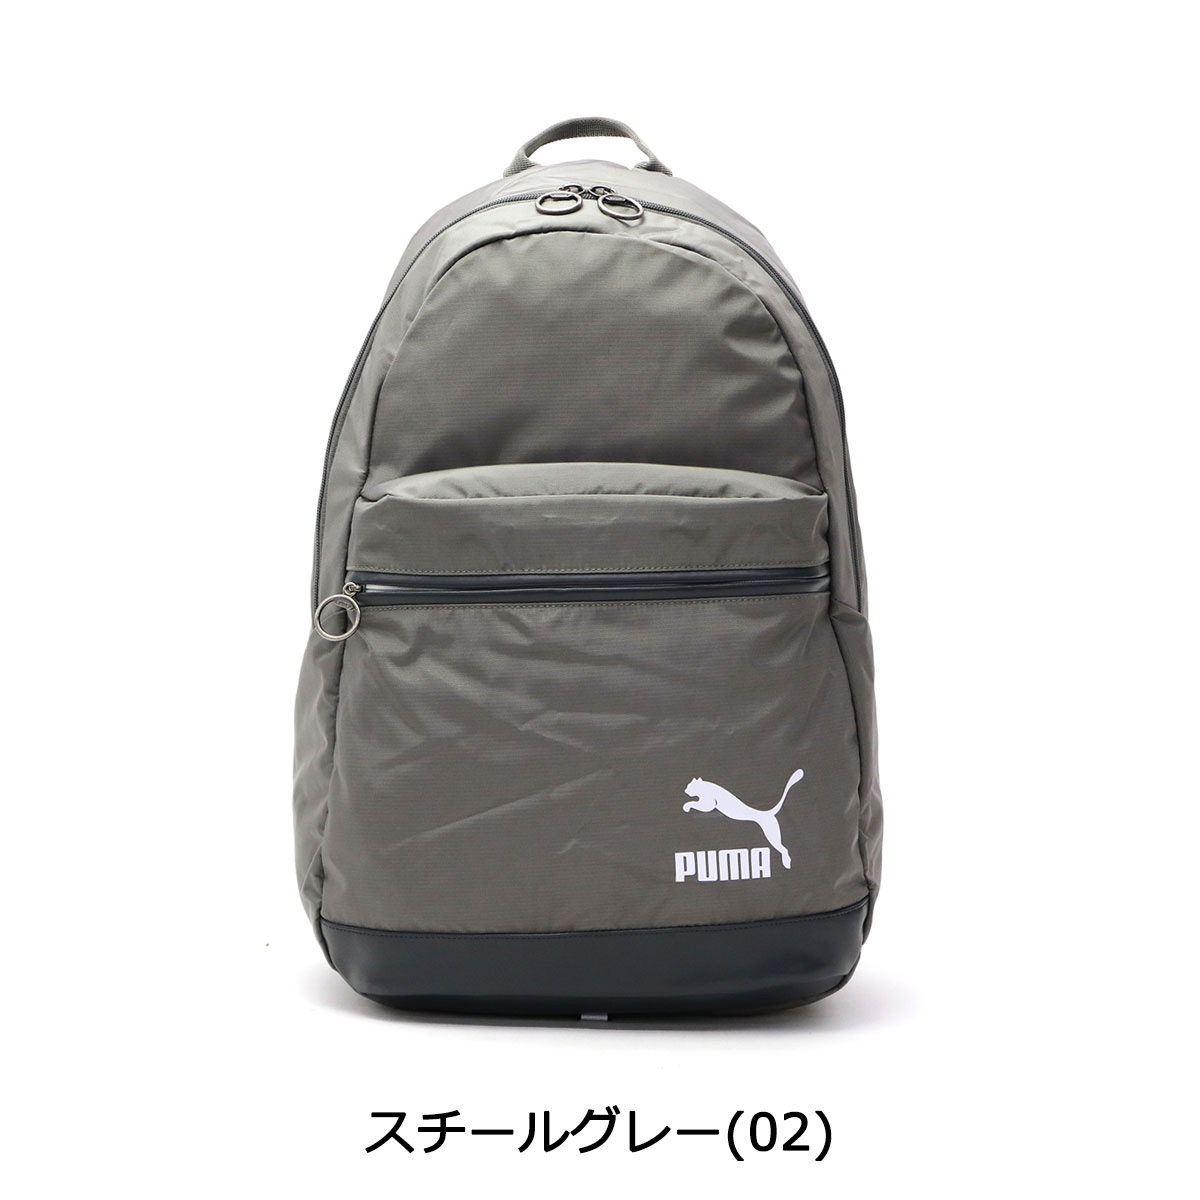 cdd72fc96c  SALE 30% OFF  PUMA rucksack Original daypack backpack B4 Casual commuting  to school lightweight Athletic mens womens 075086